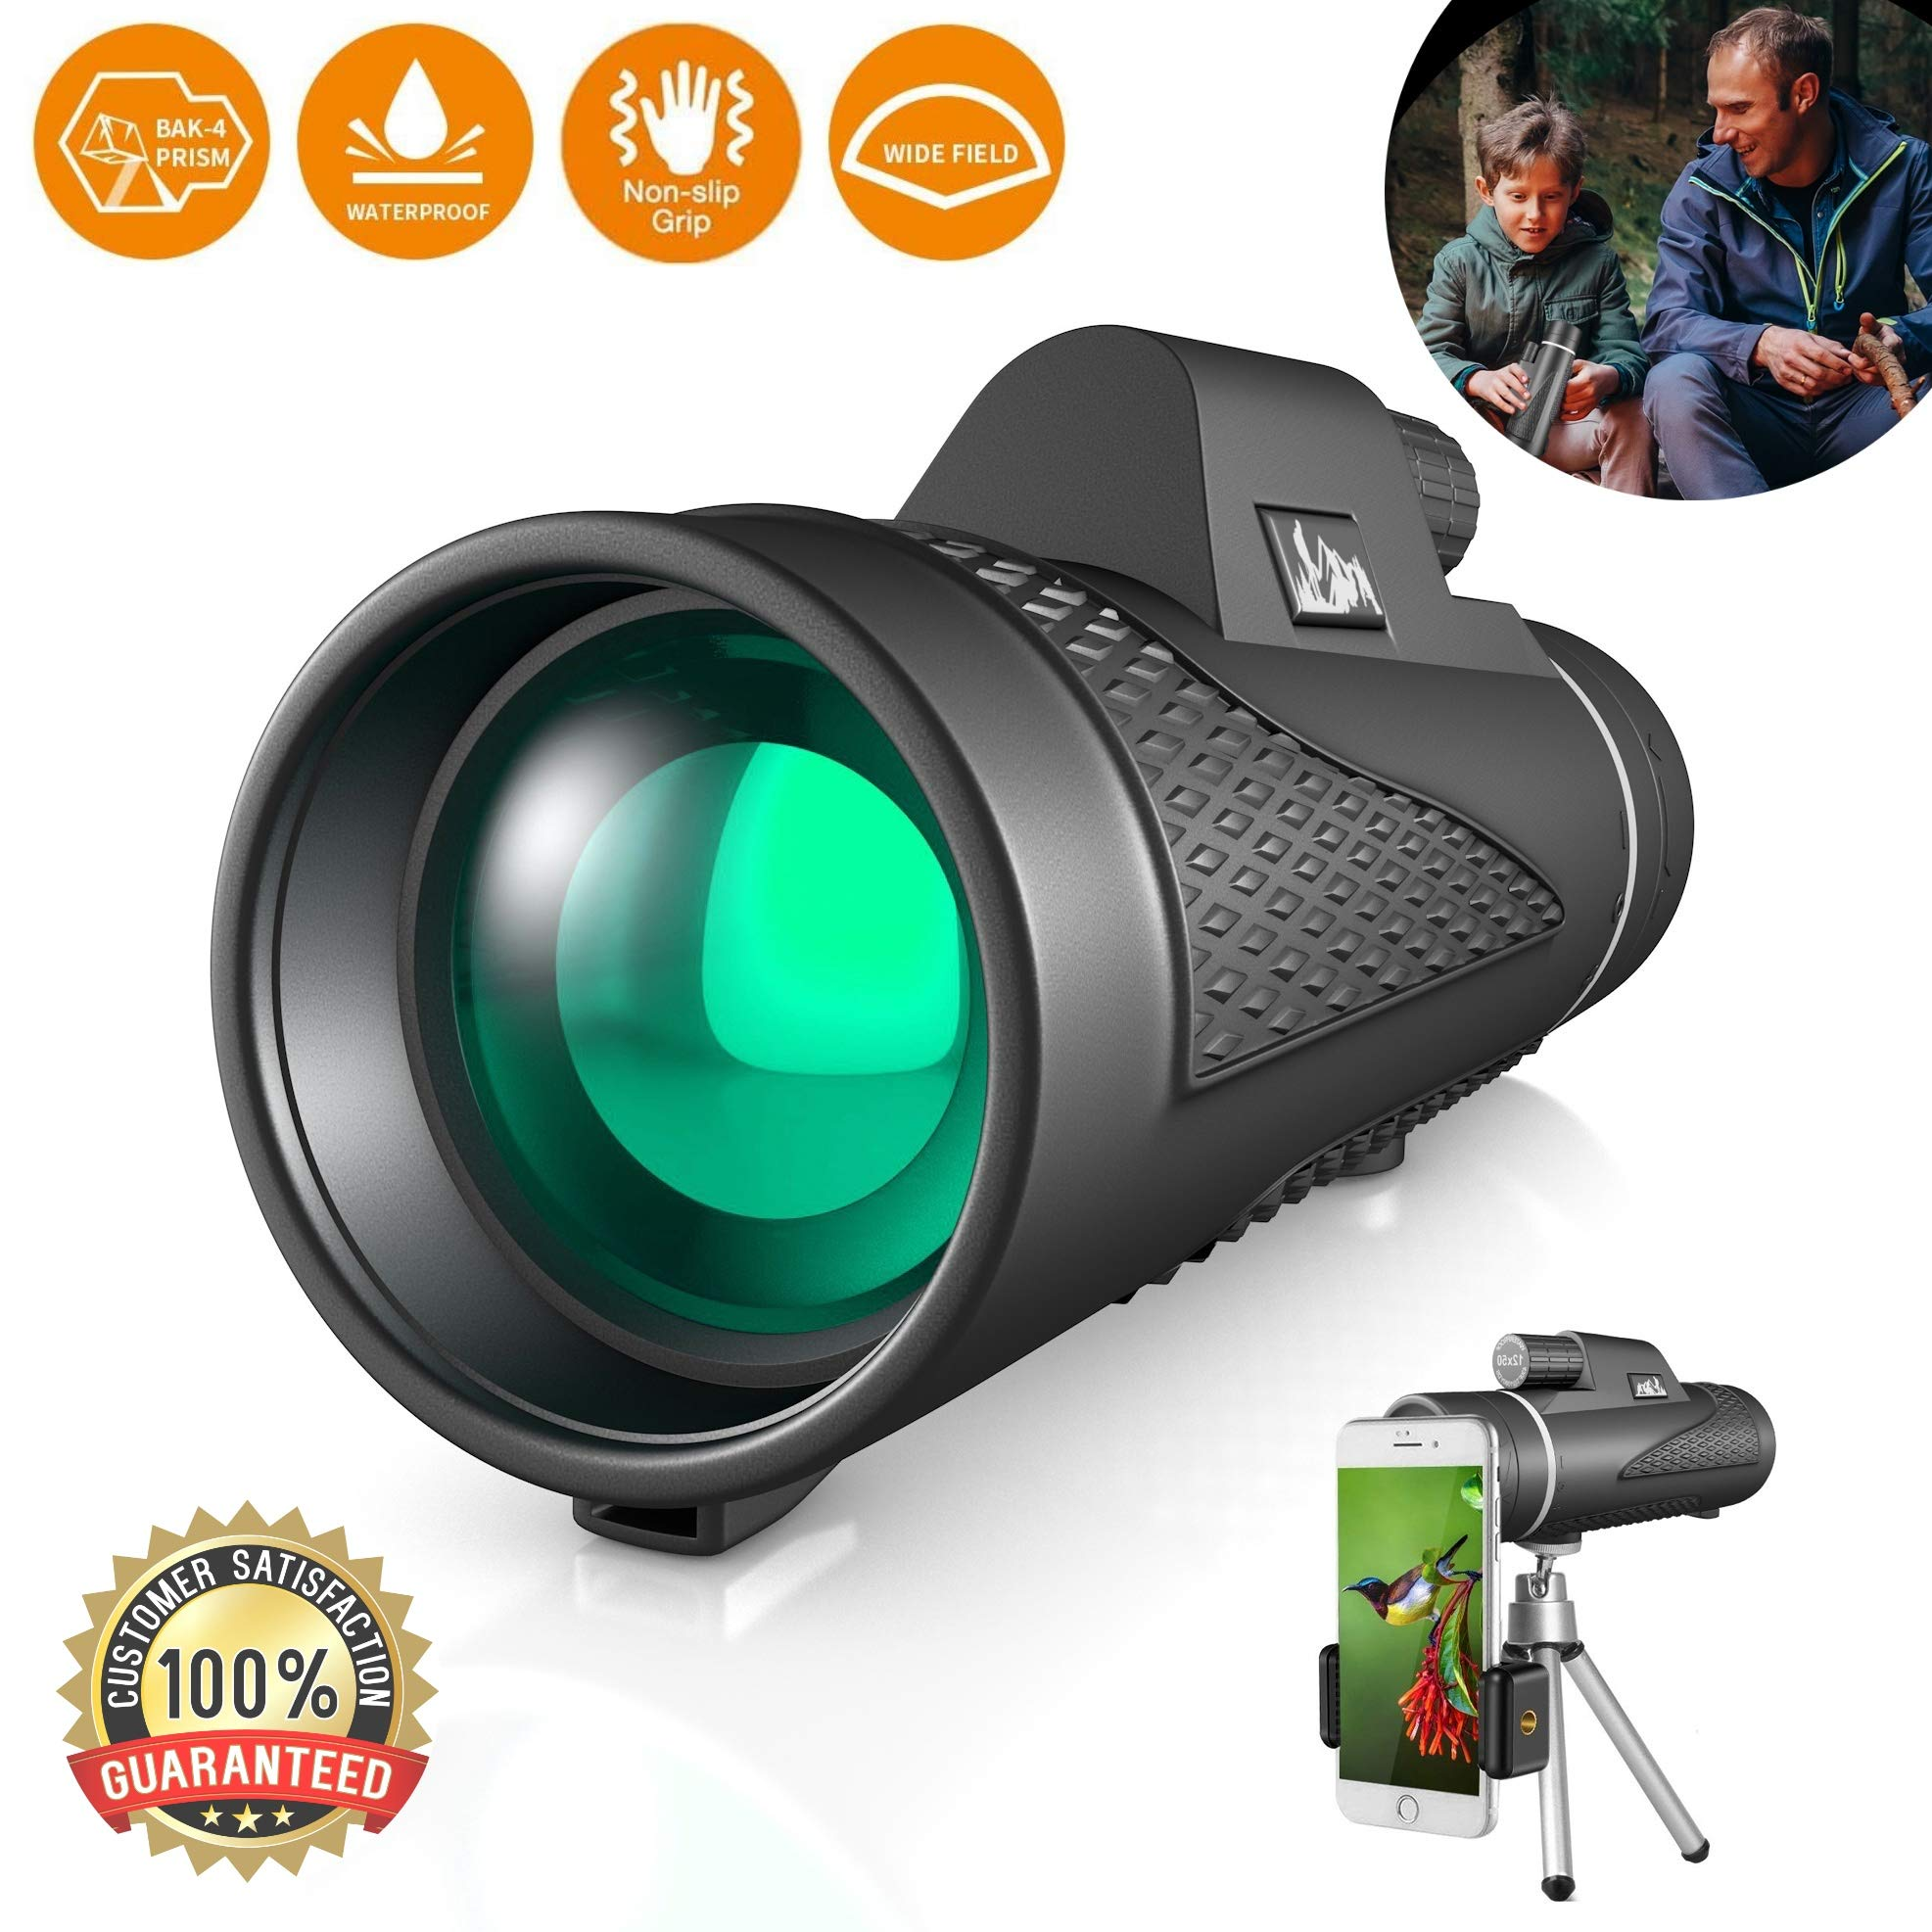 Best Compact 12x50 High Power Monocular Telescope Water Proof Shock Resistant BAK4 Prism for Bird Watching, Spotting, Hiking, Camping, and Hunting, Includes Free Tripod and Phone Adapter Clip by Life's Breadth